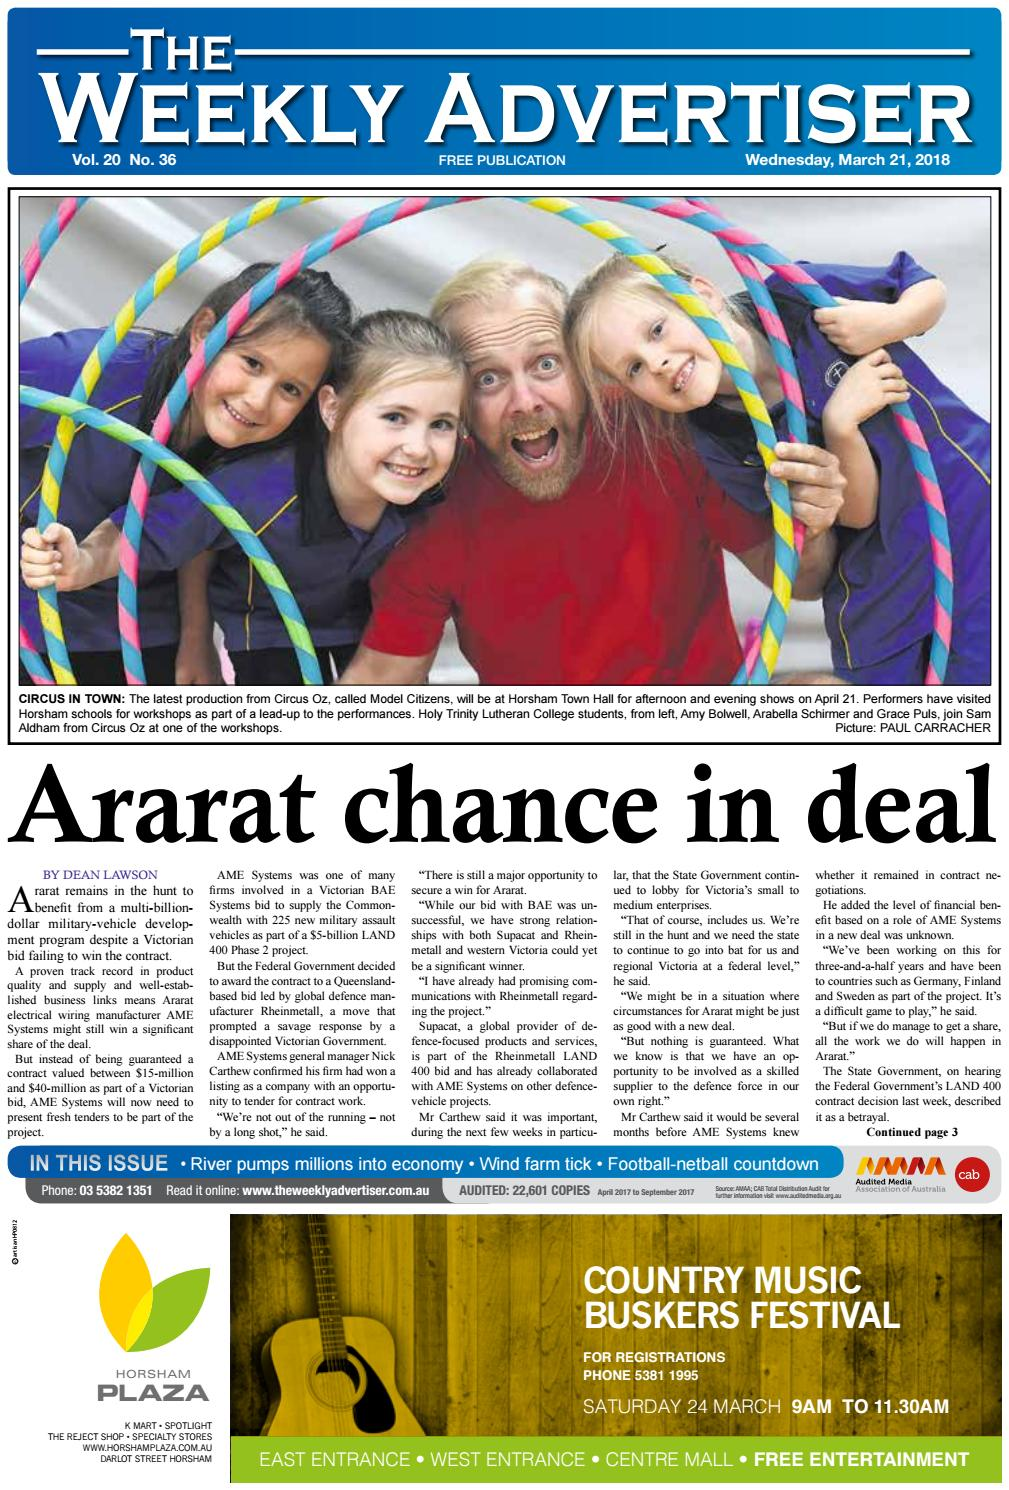 The Weekly Advertiser - Wednesday, March 21, 2018 by The Weekly Advertiser  - issuu